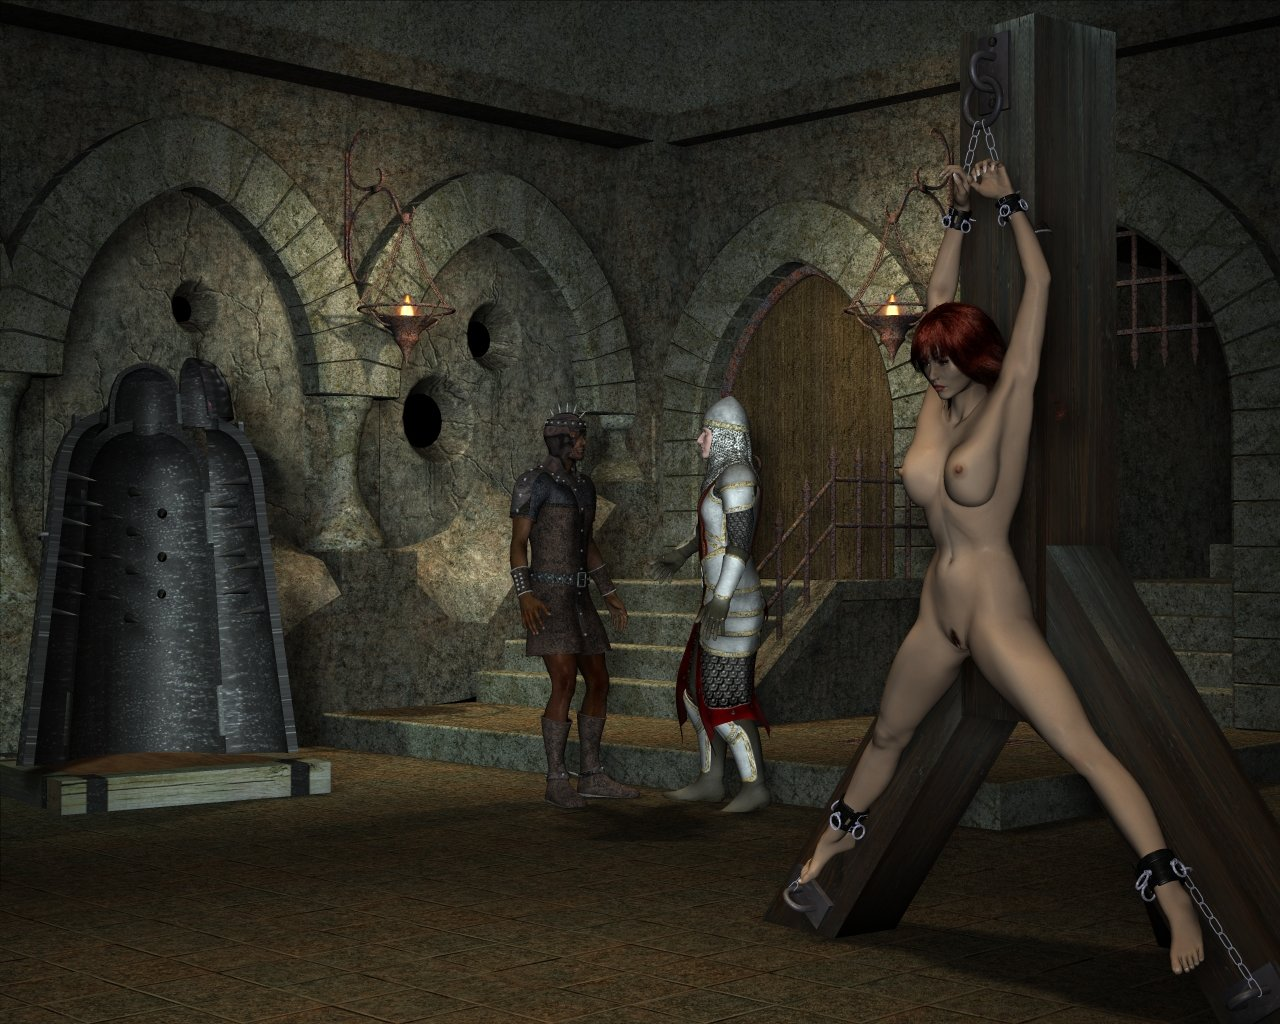 Fetish art of medieval torture smut scenes